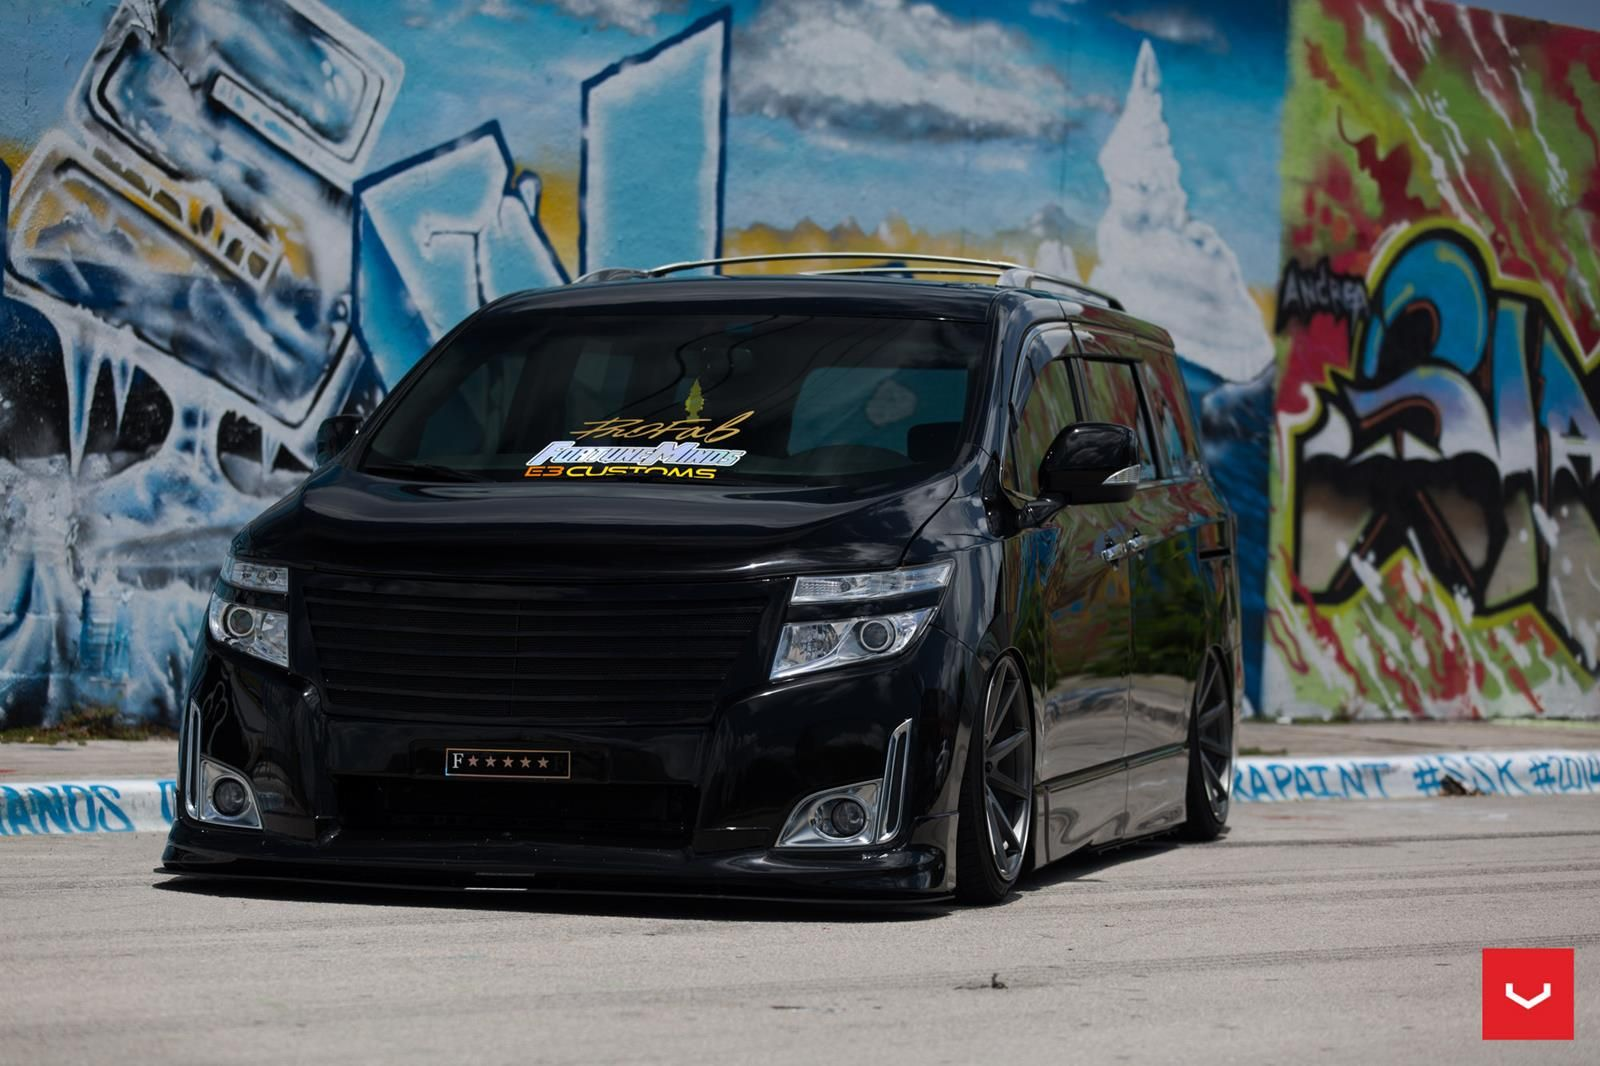 Bagged Nissan Quest On Vossen Wheels Could Start A New Trend Carscoops Nissan Quest Nissan Vossen